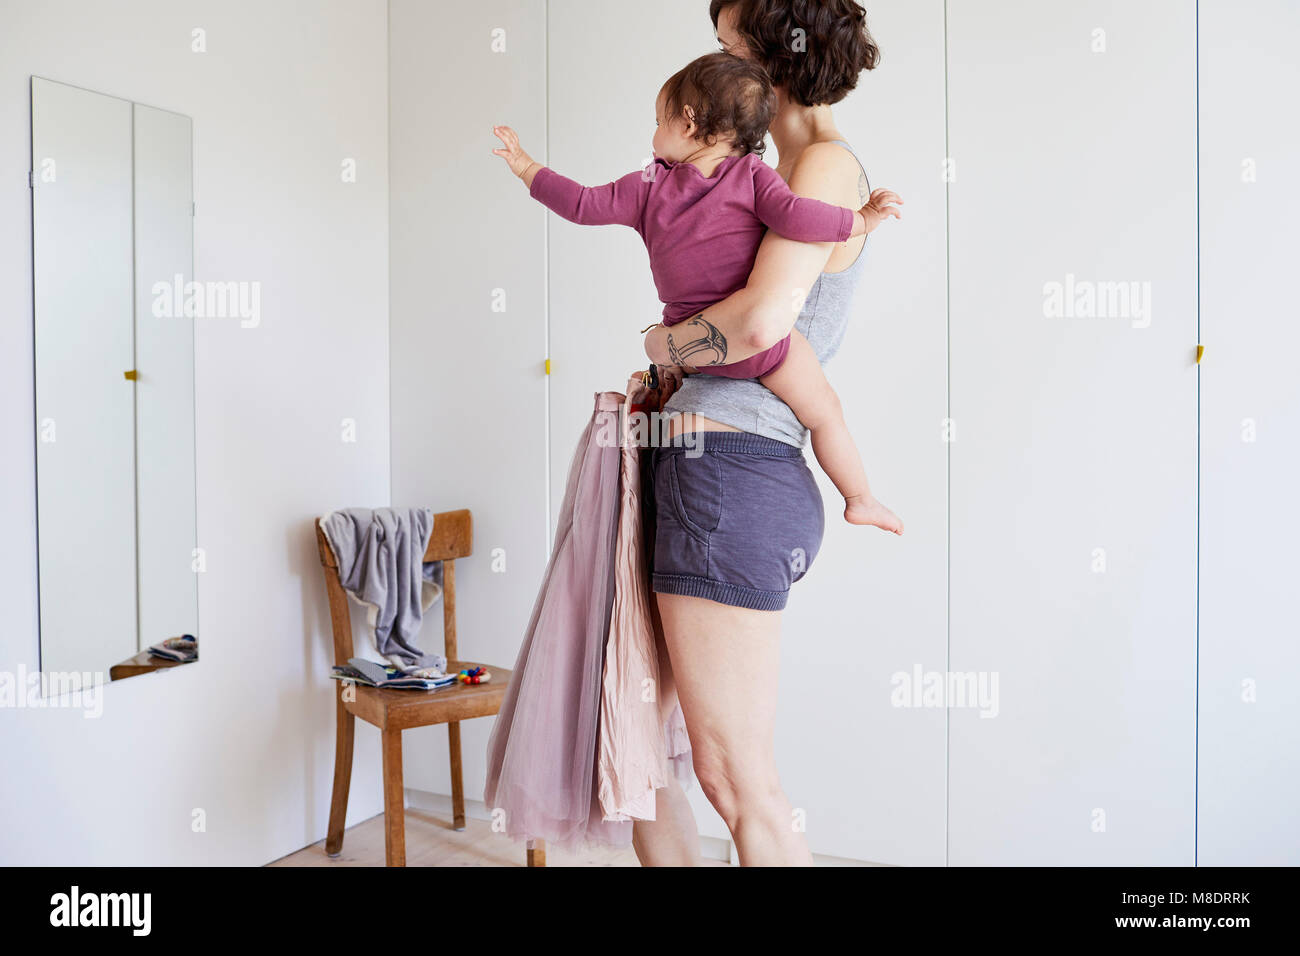 Mother holding baby girl, whilst looking in mirror, deciding what to wear - Stock Image